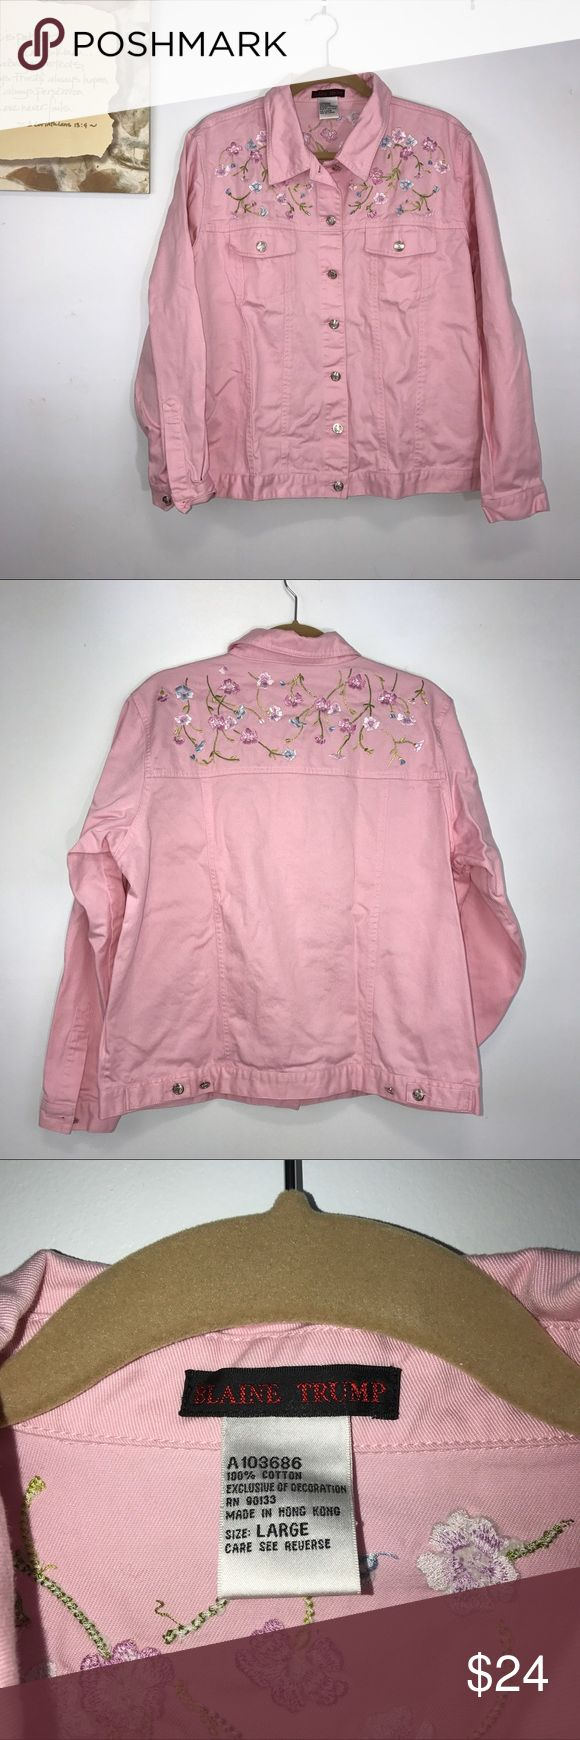 """Blaine Trump Pink Embroidered Woman's Jacket Lg Blaine Trump pink ladies jacket with embroidered flowers on front and back yoke. Two front pockets. Lying flat, approximate measurements are: bust and waist 24""""; lower hem width 23""""; length 24"""". (J01-12)  🌼 No holes, piling or stains. Items stored in smoke free, pet free, perfume free environment. No trades or modeling. Same or next day shipping.  Save by bundling. All offers should be submitted with the offer button. Blaine Trump Jackets…"""